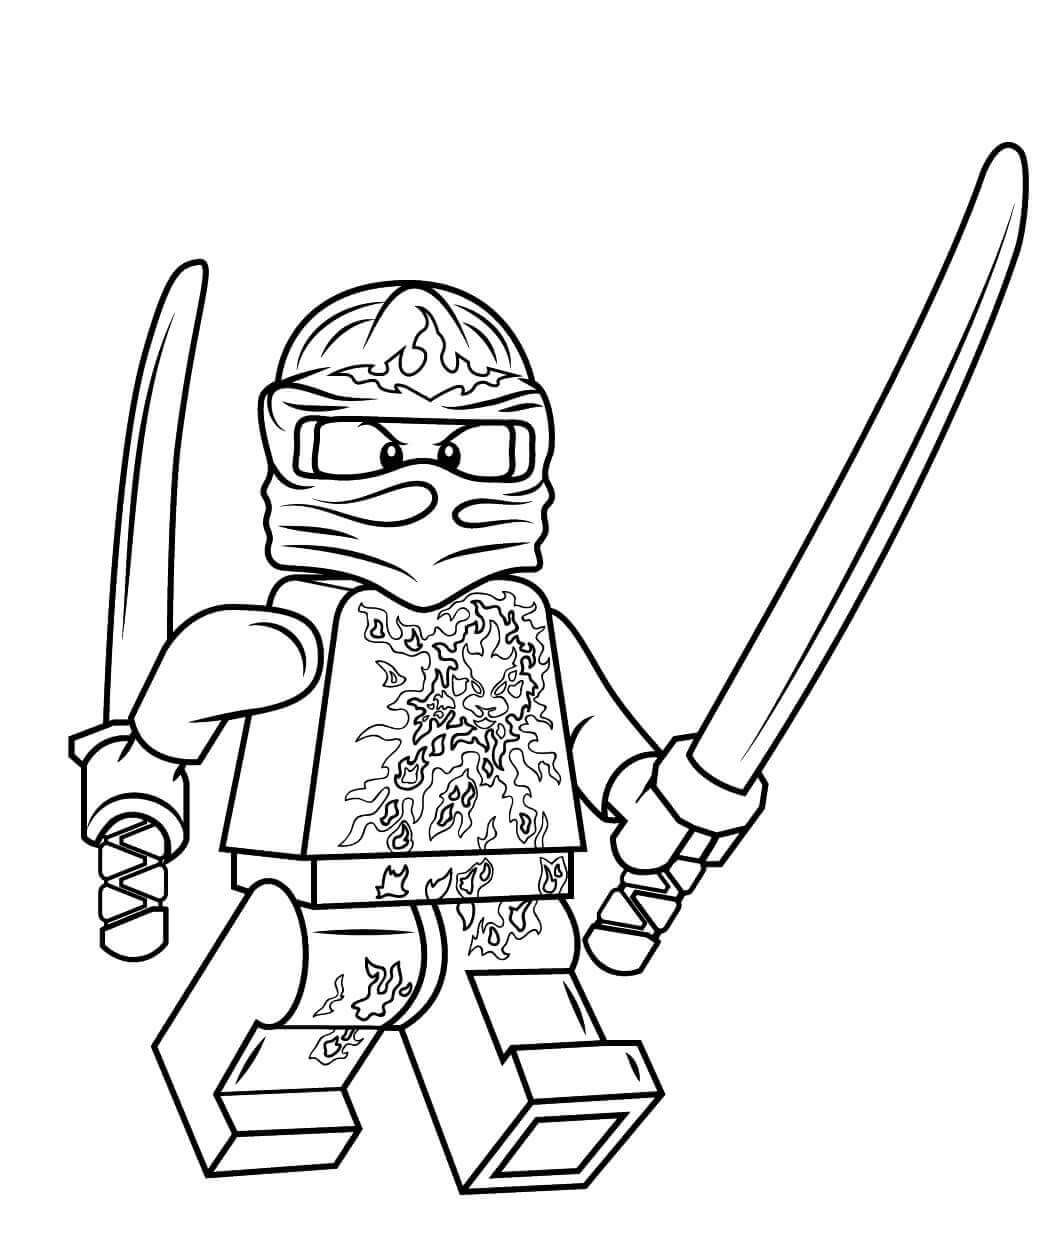 30 Free Printable Lego Ninjago Coloring Pages With Images